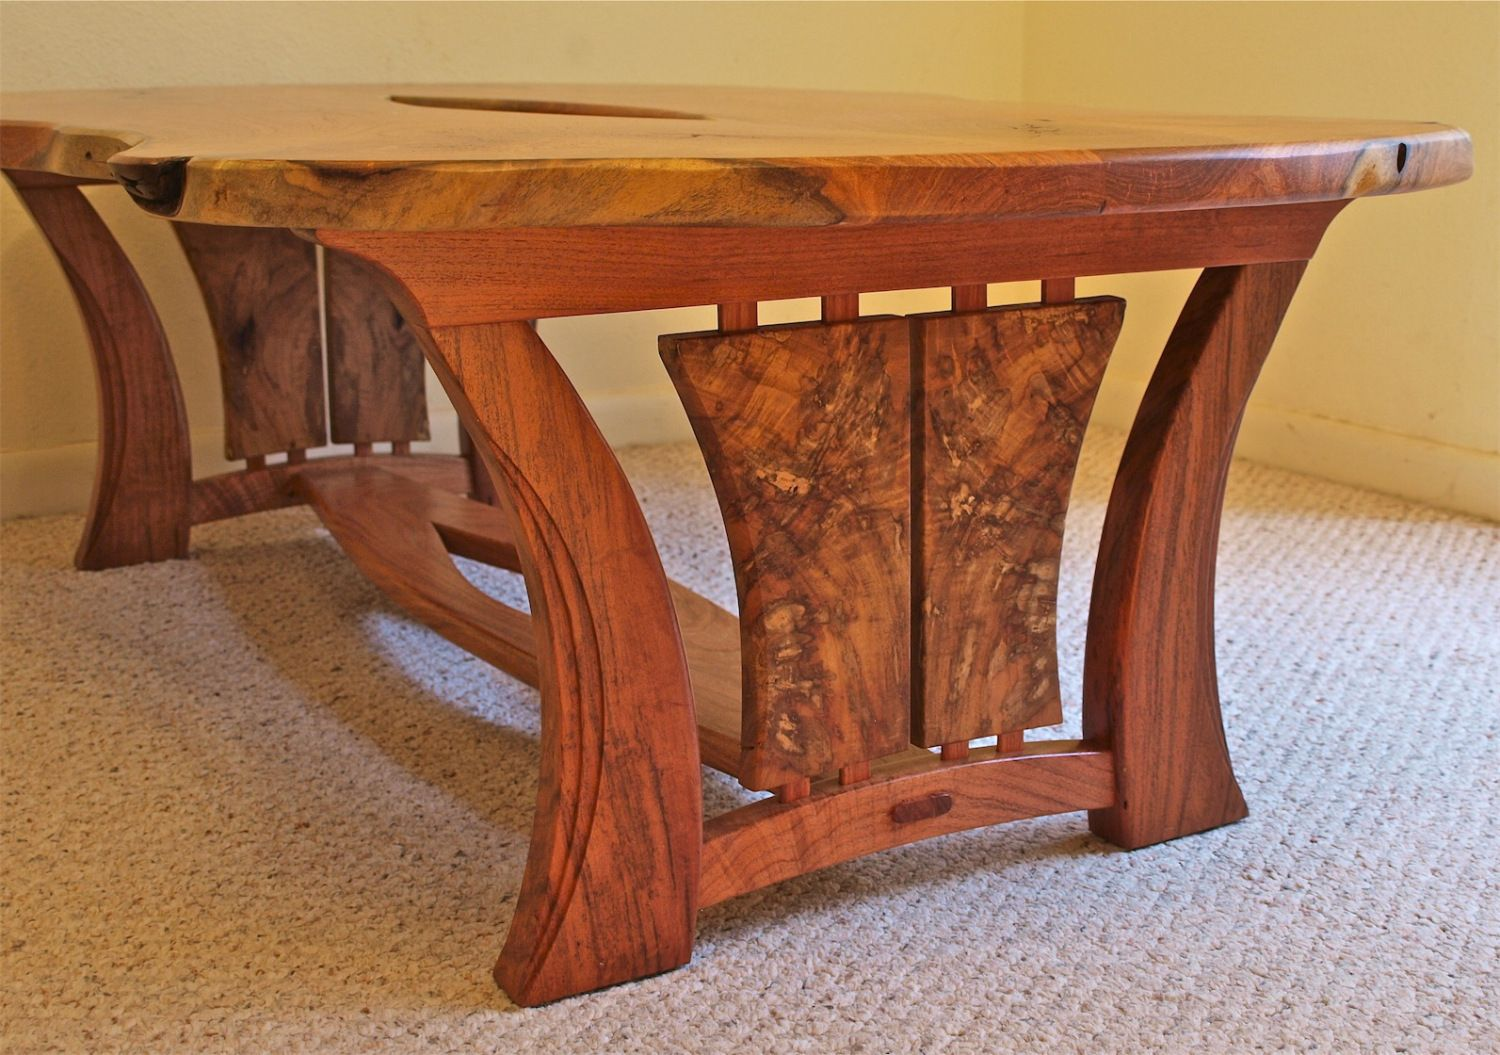 live edge mesquite coffee table project ideas handmade wood furniture table furniture. Black Bedroom Furniture Sets. Home Design Ideas